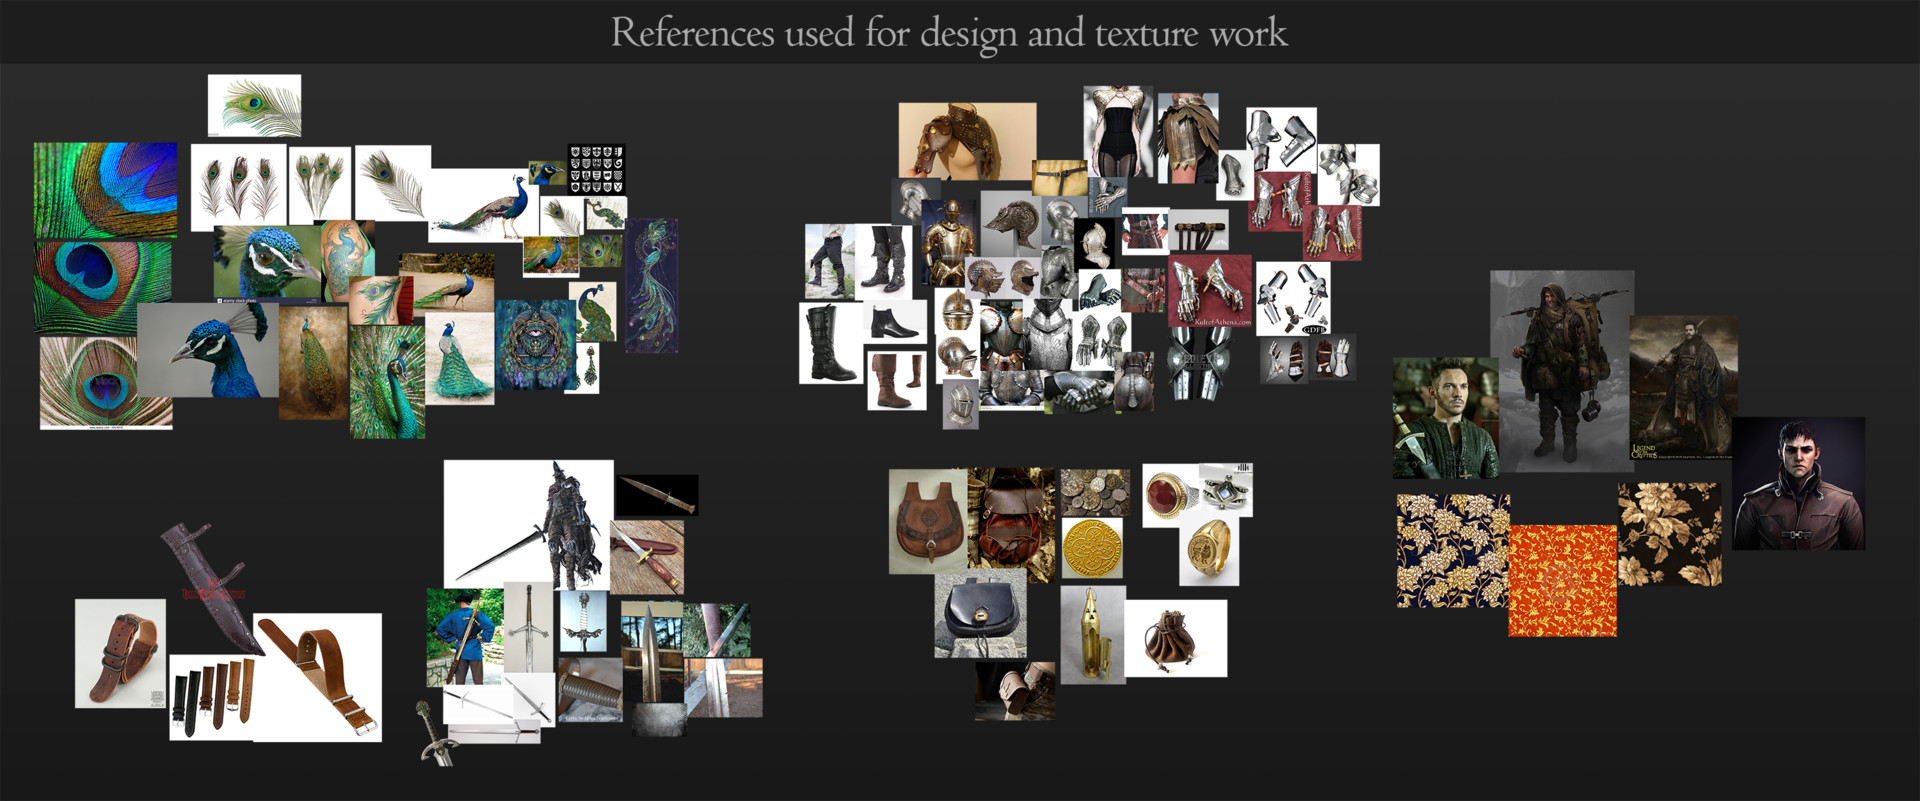 Images I used to help inform the design of my character, both in the concept and in the model itself.